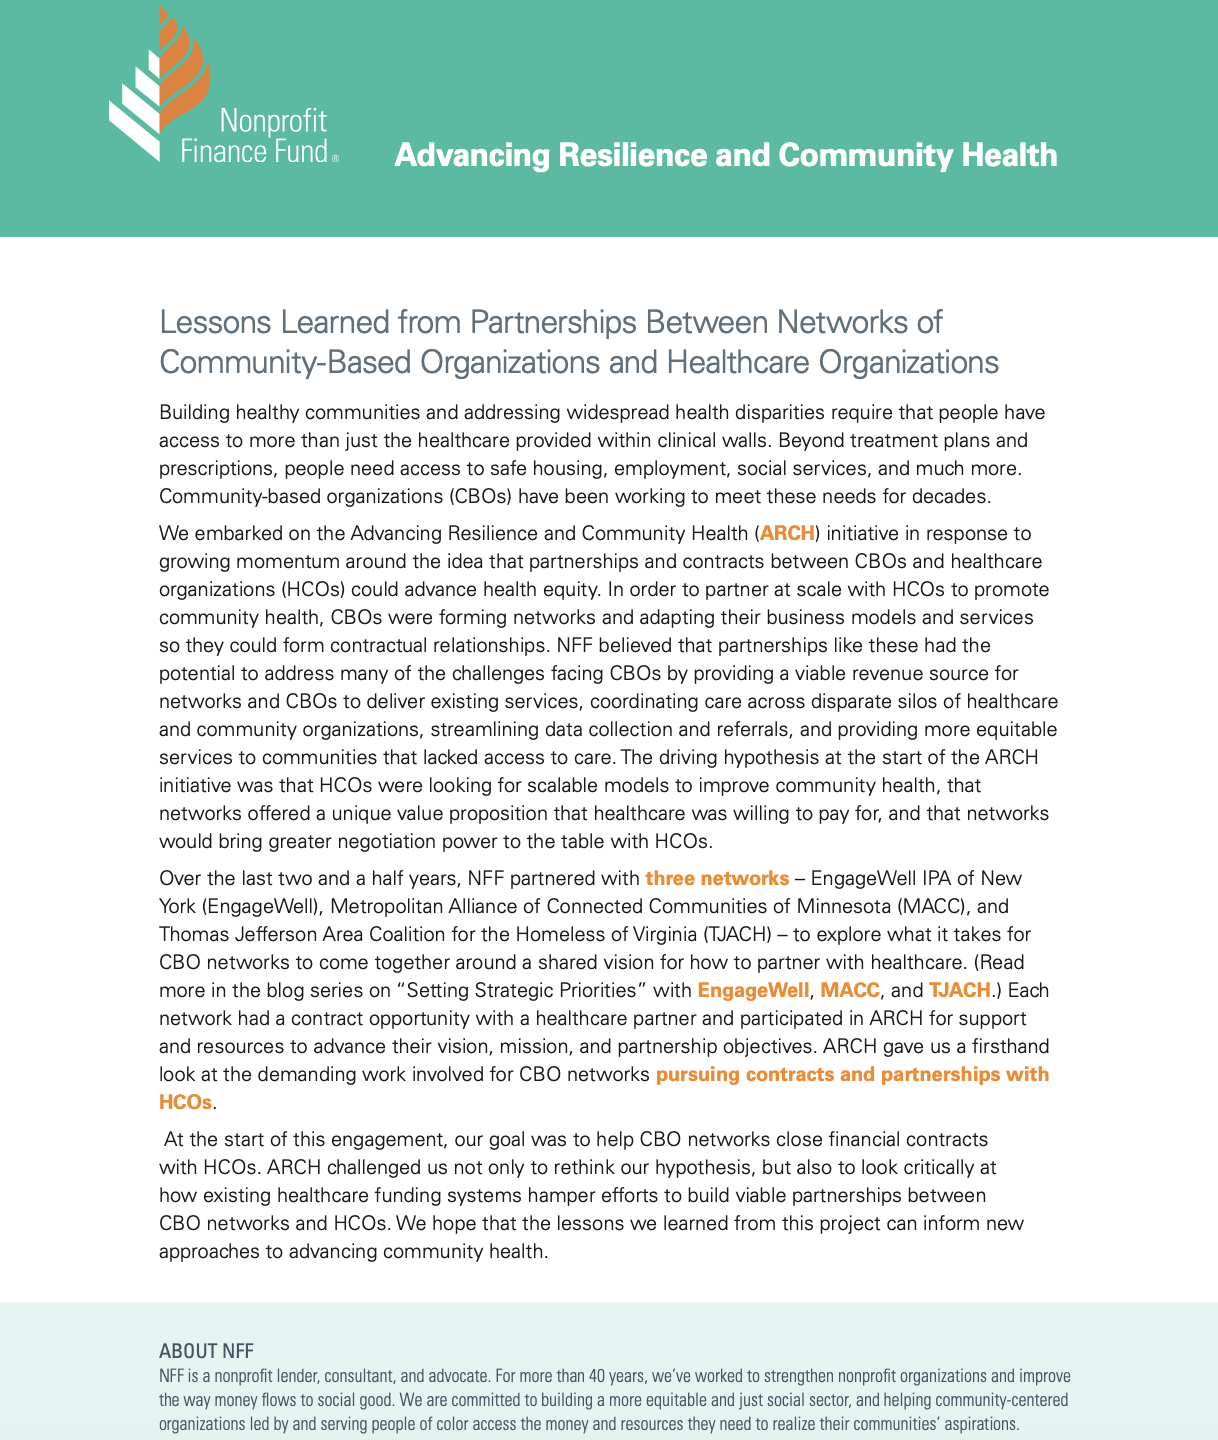 Lessons Learned from Partnerships Between Networks of Community-Based Organizations and Health Care Organizations